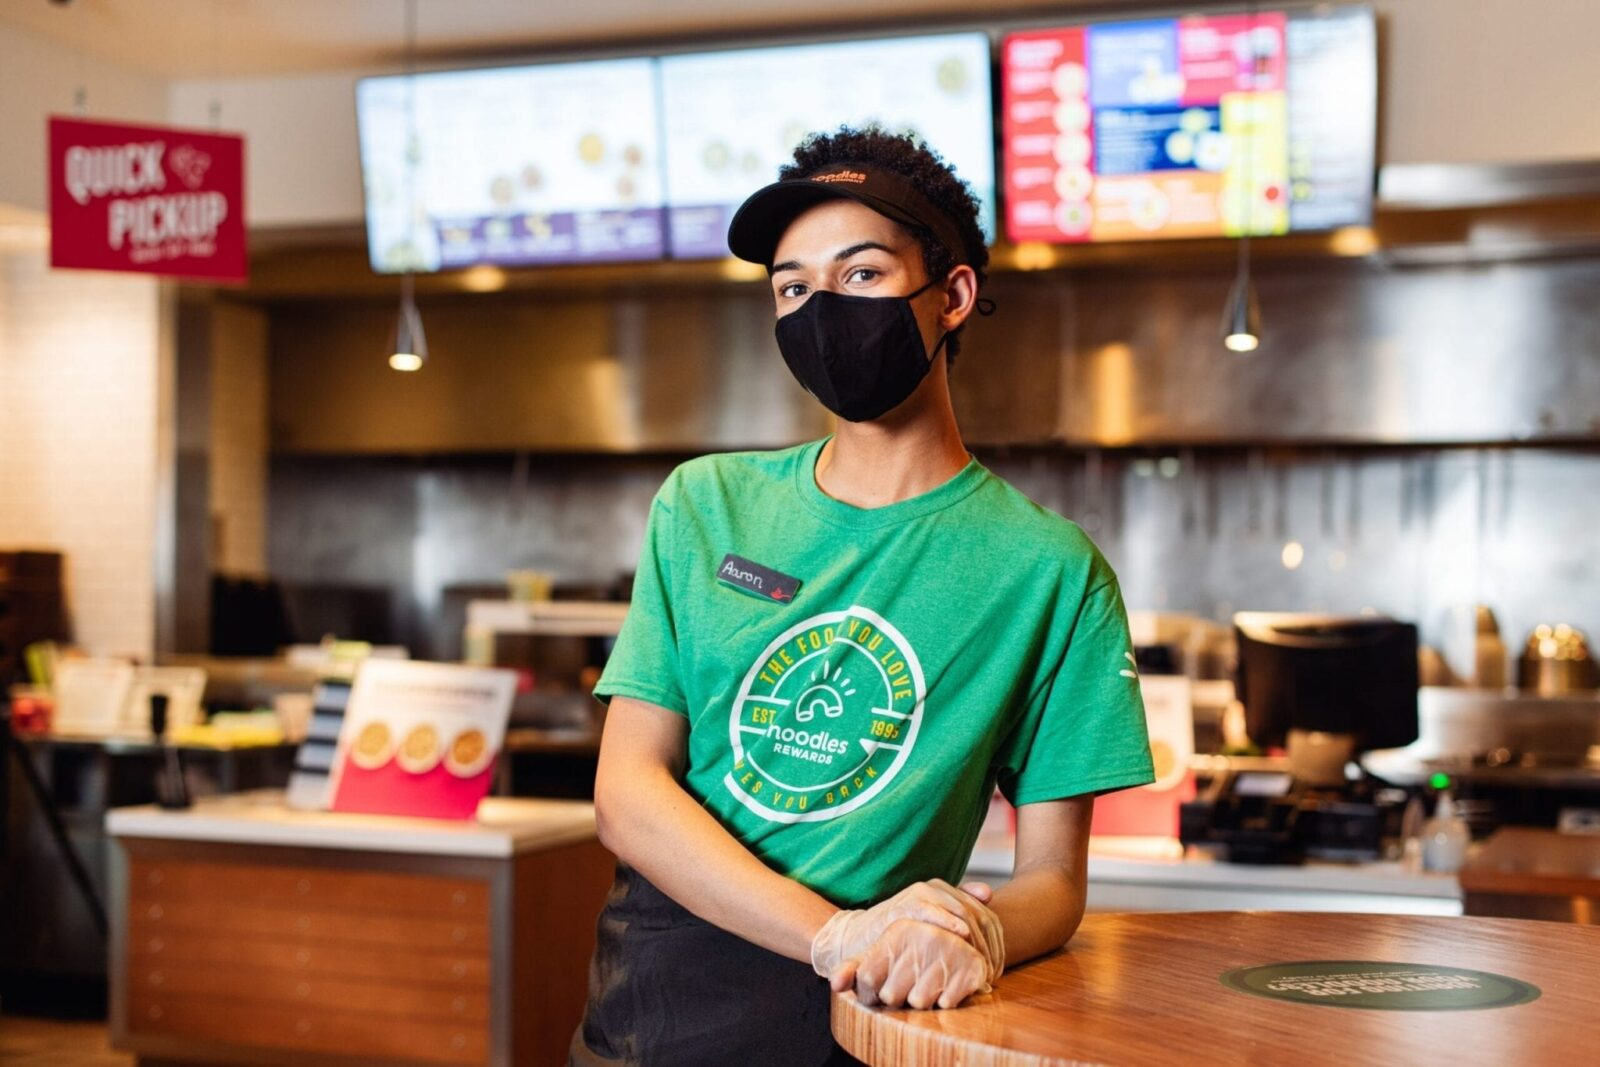 Noodles & Company - Advancing Commitment to Diversity and Inclusion